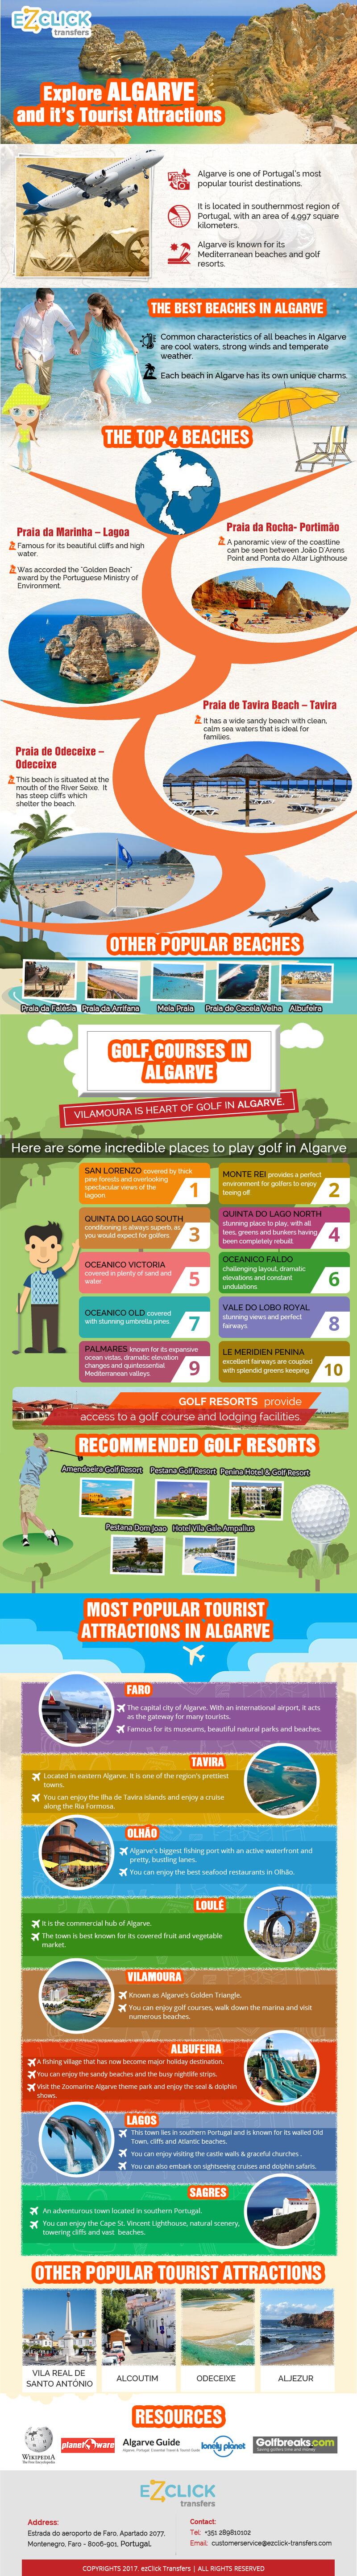 explore-algarve_infographic-plaza